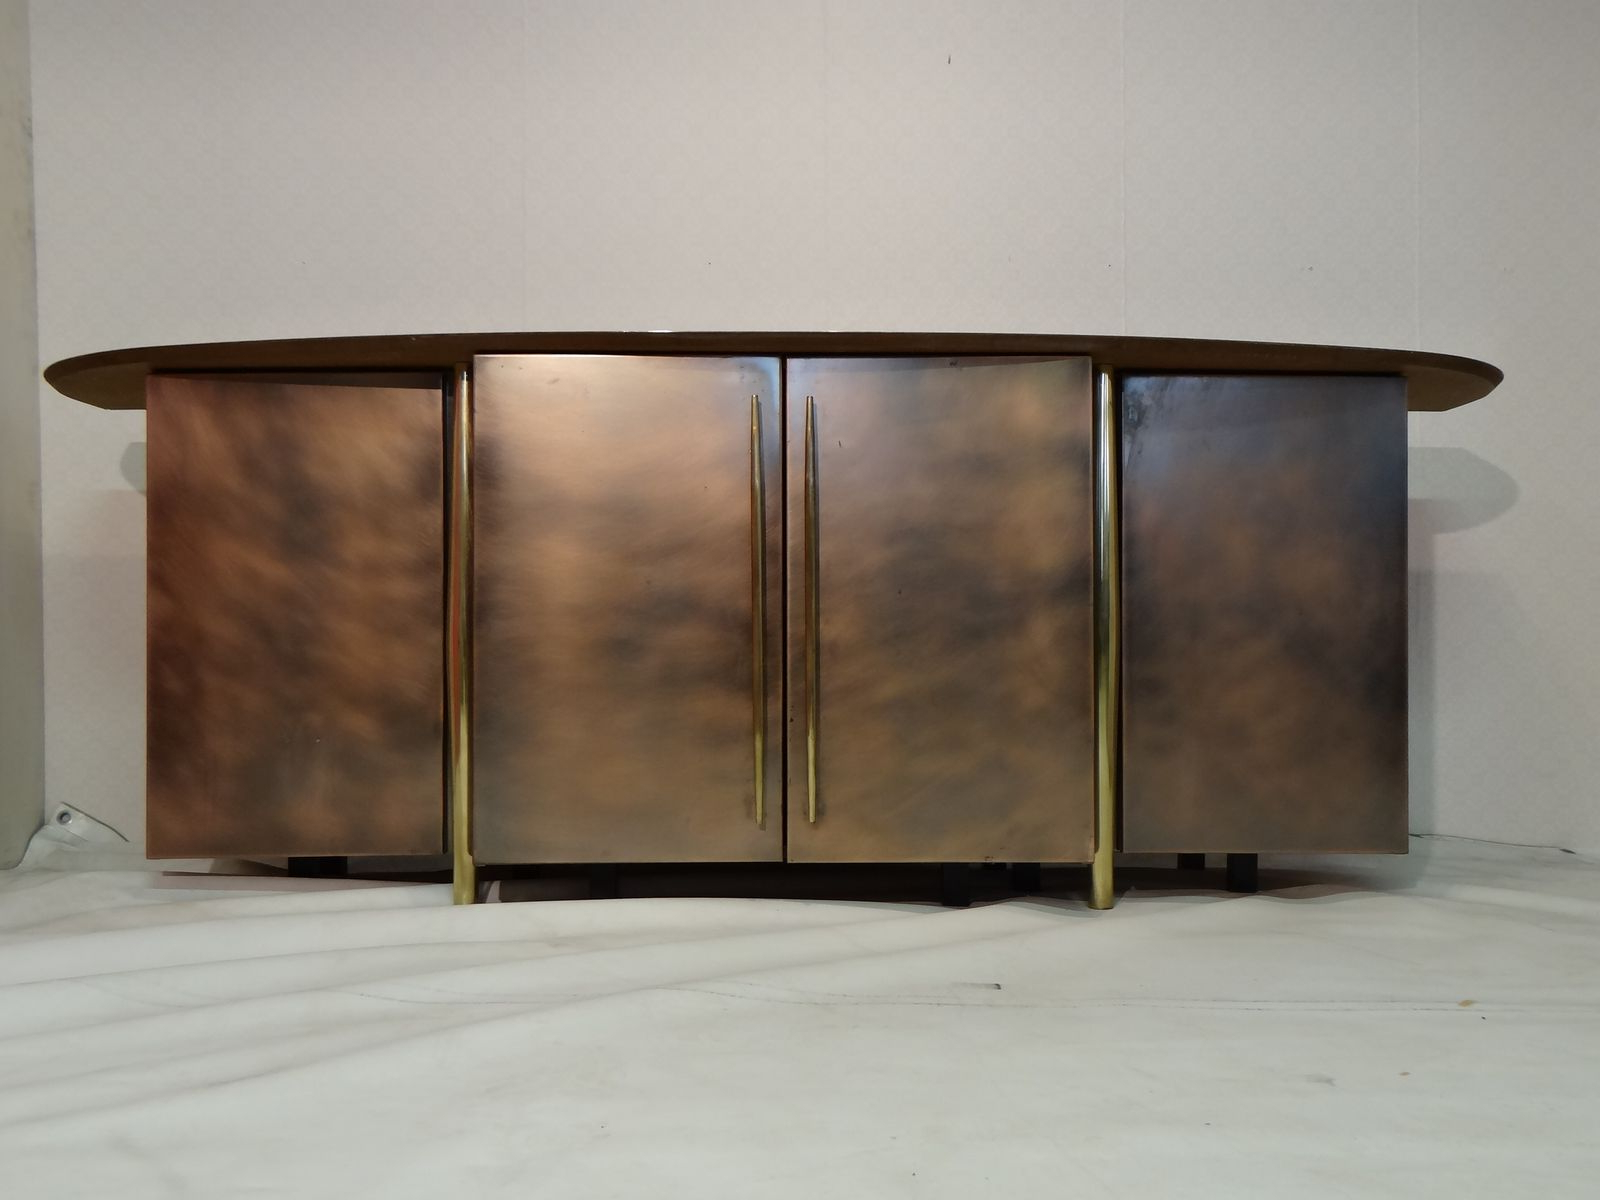 Vintage Brass Sideboard From Belgo Chrom For Sale At Pamono With Current Aged Brass Sideboards (Gallery 13 of 20)